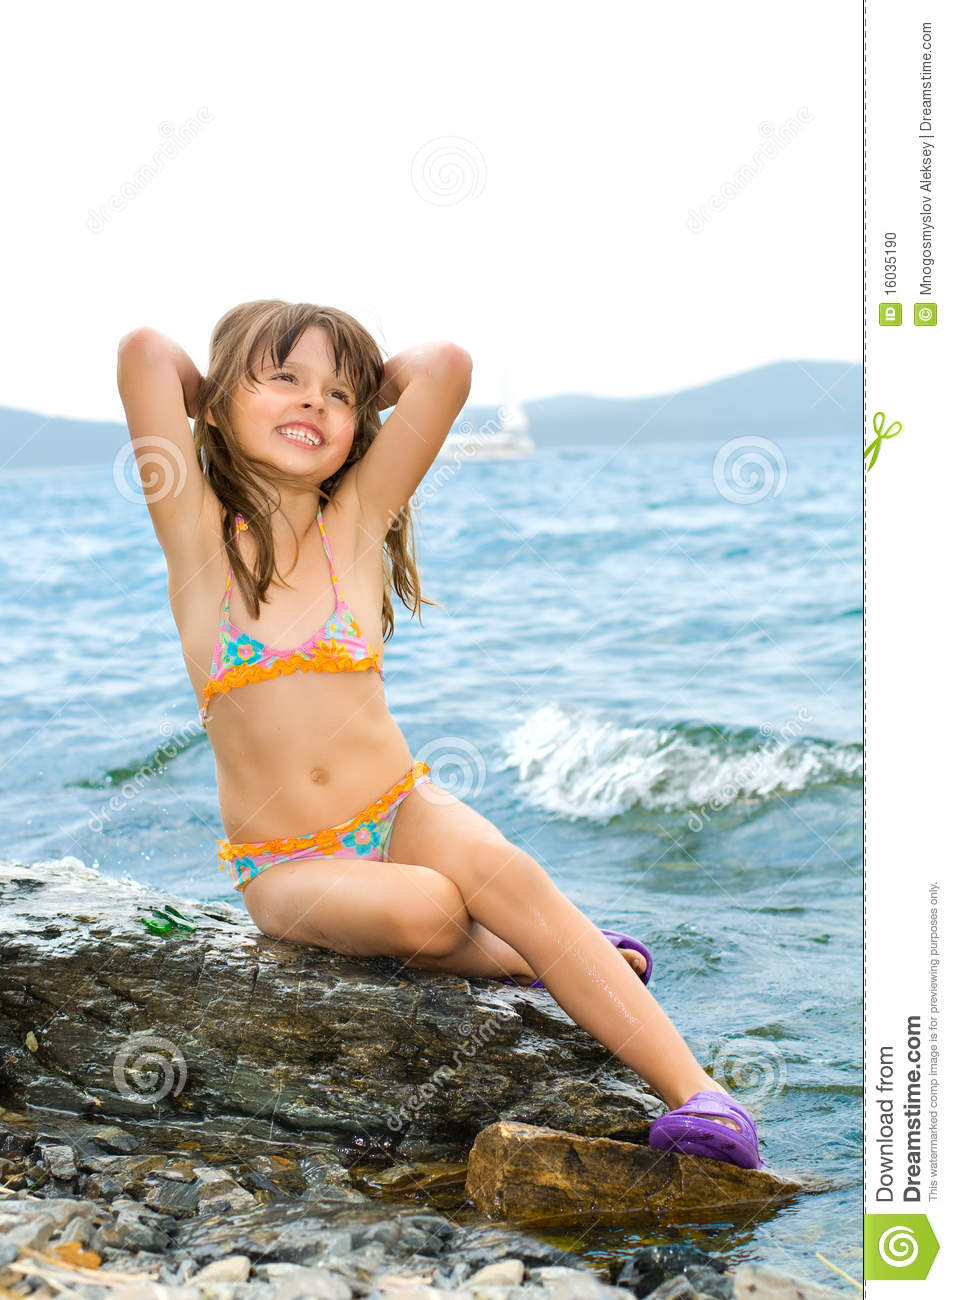 Little Girls Nails And Girls On Pinterest: Little Girl Stock Photo. Image Of Rock, Nature, Lake